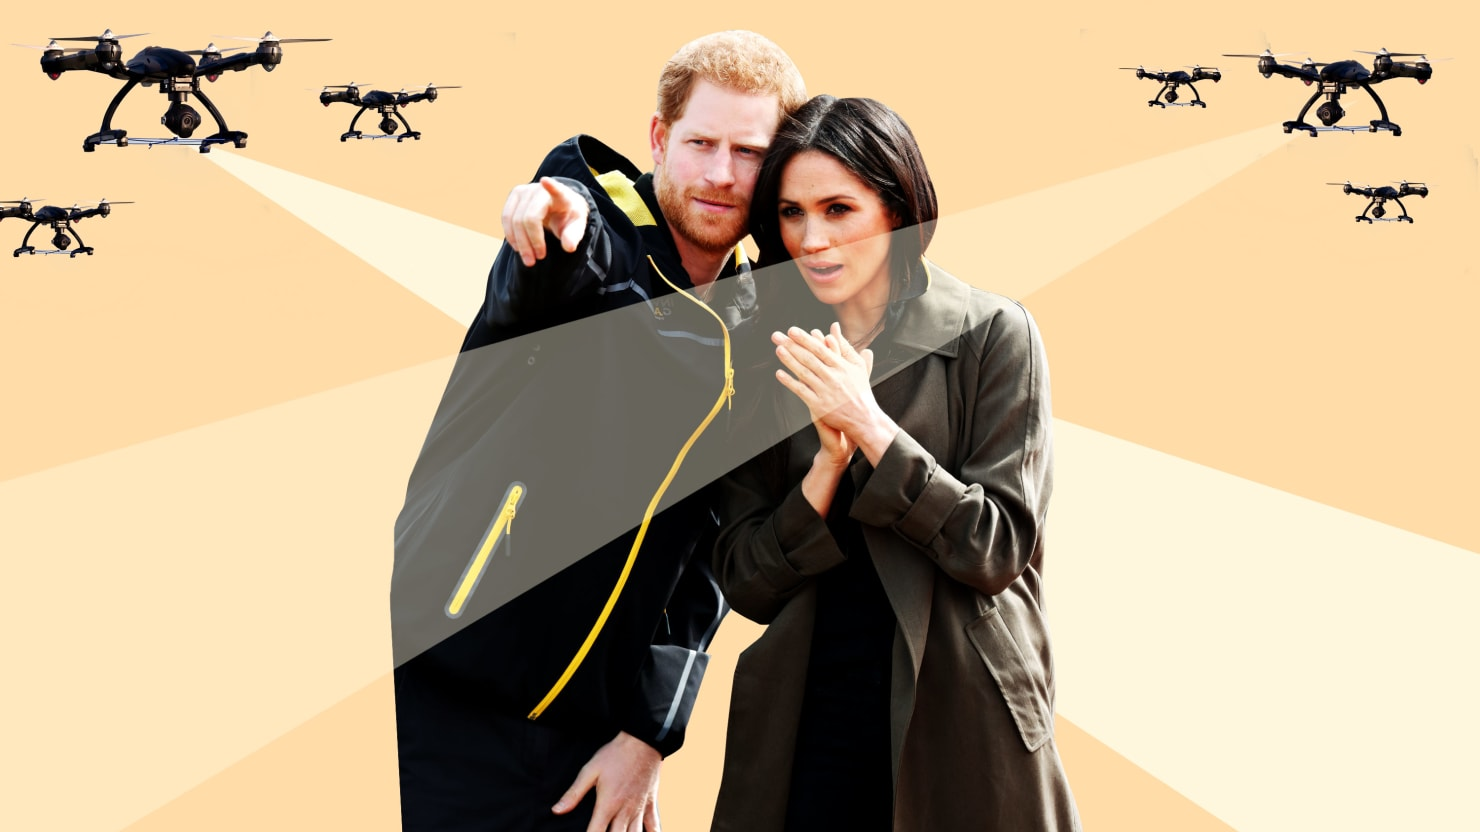 Prince Harry and Meghan Markle Report Multiple Drone Flybys to LAPD, Will Now Pay for Own Security